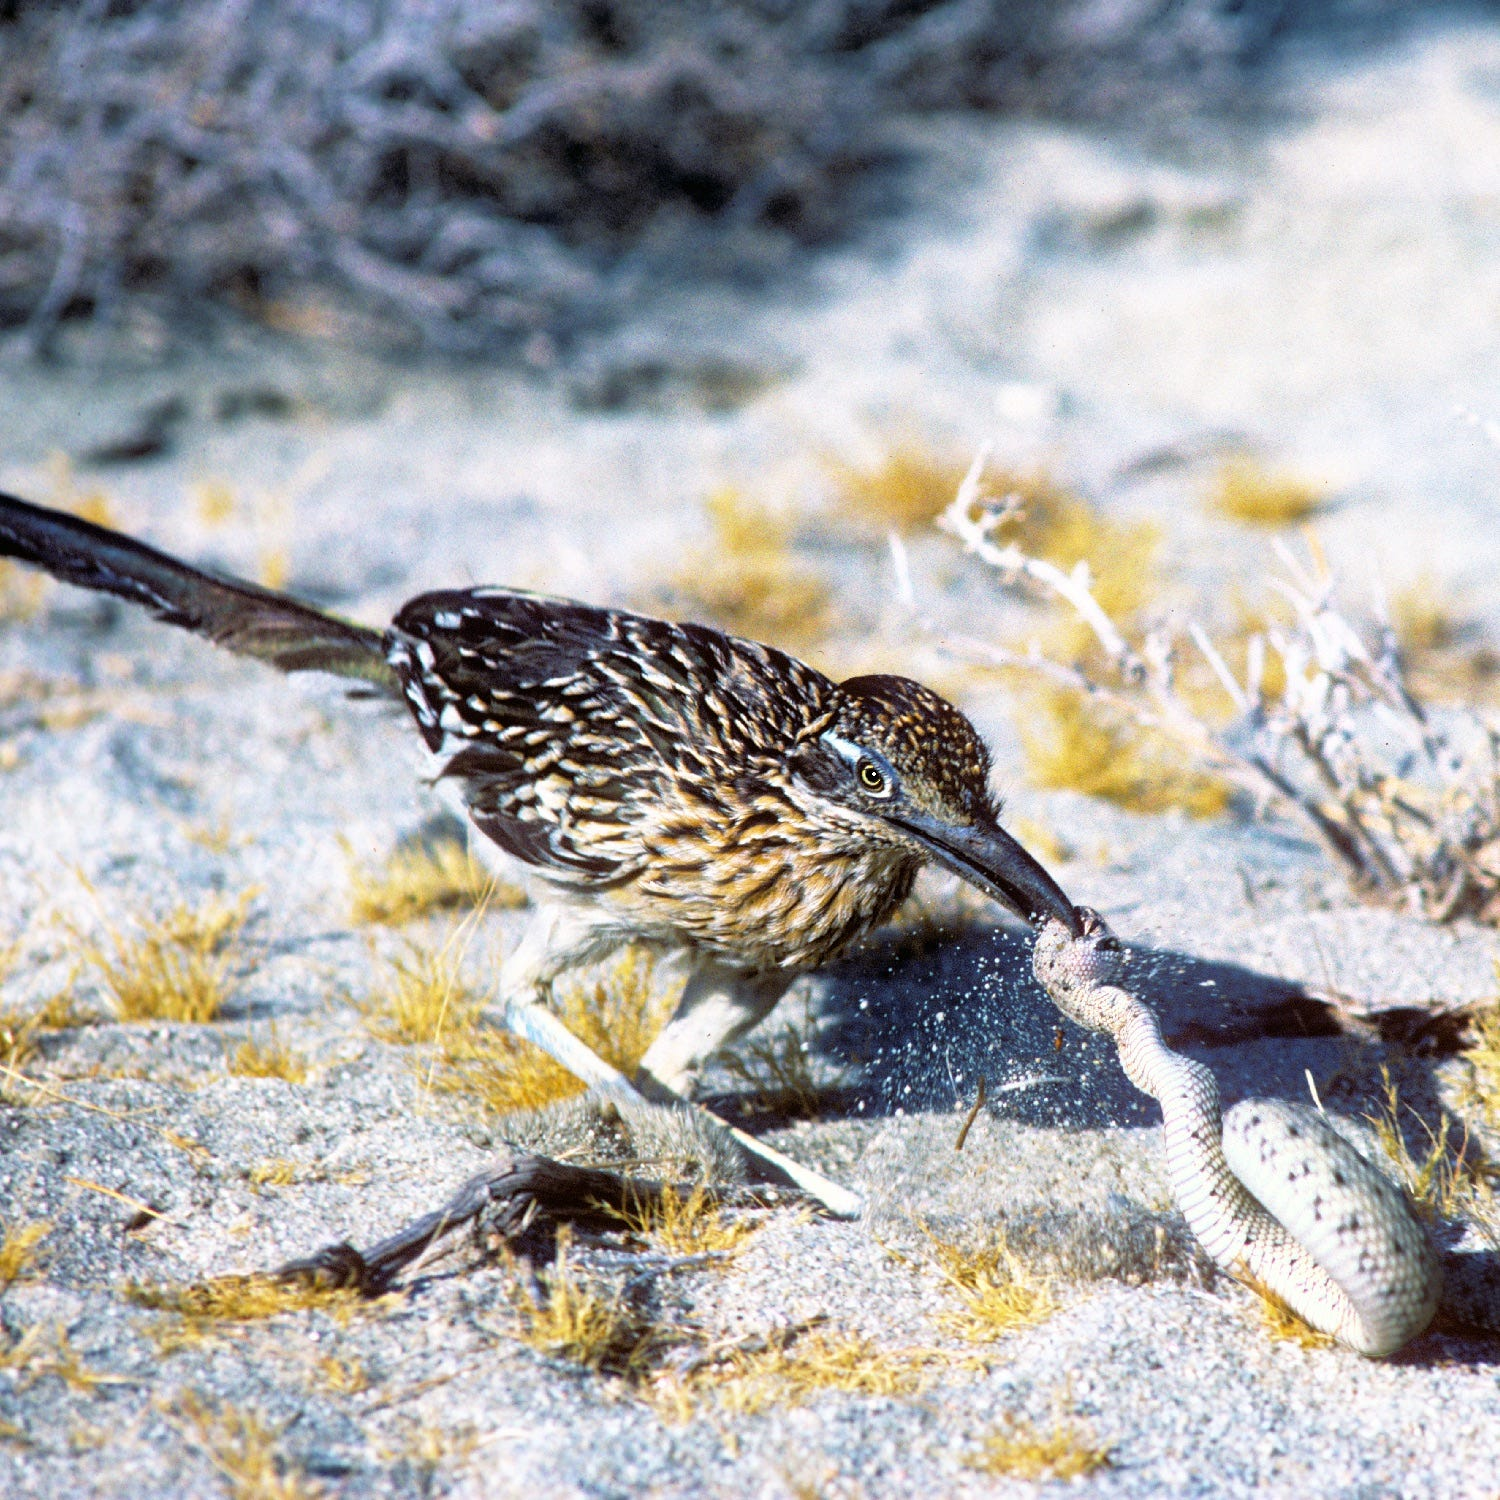 Why do roadrunners disappear from the desert each winter? This ecologist has a guess